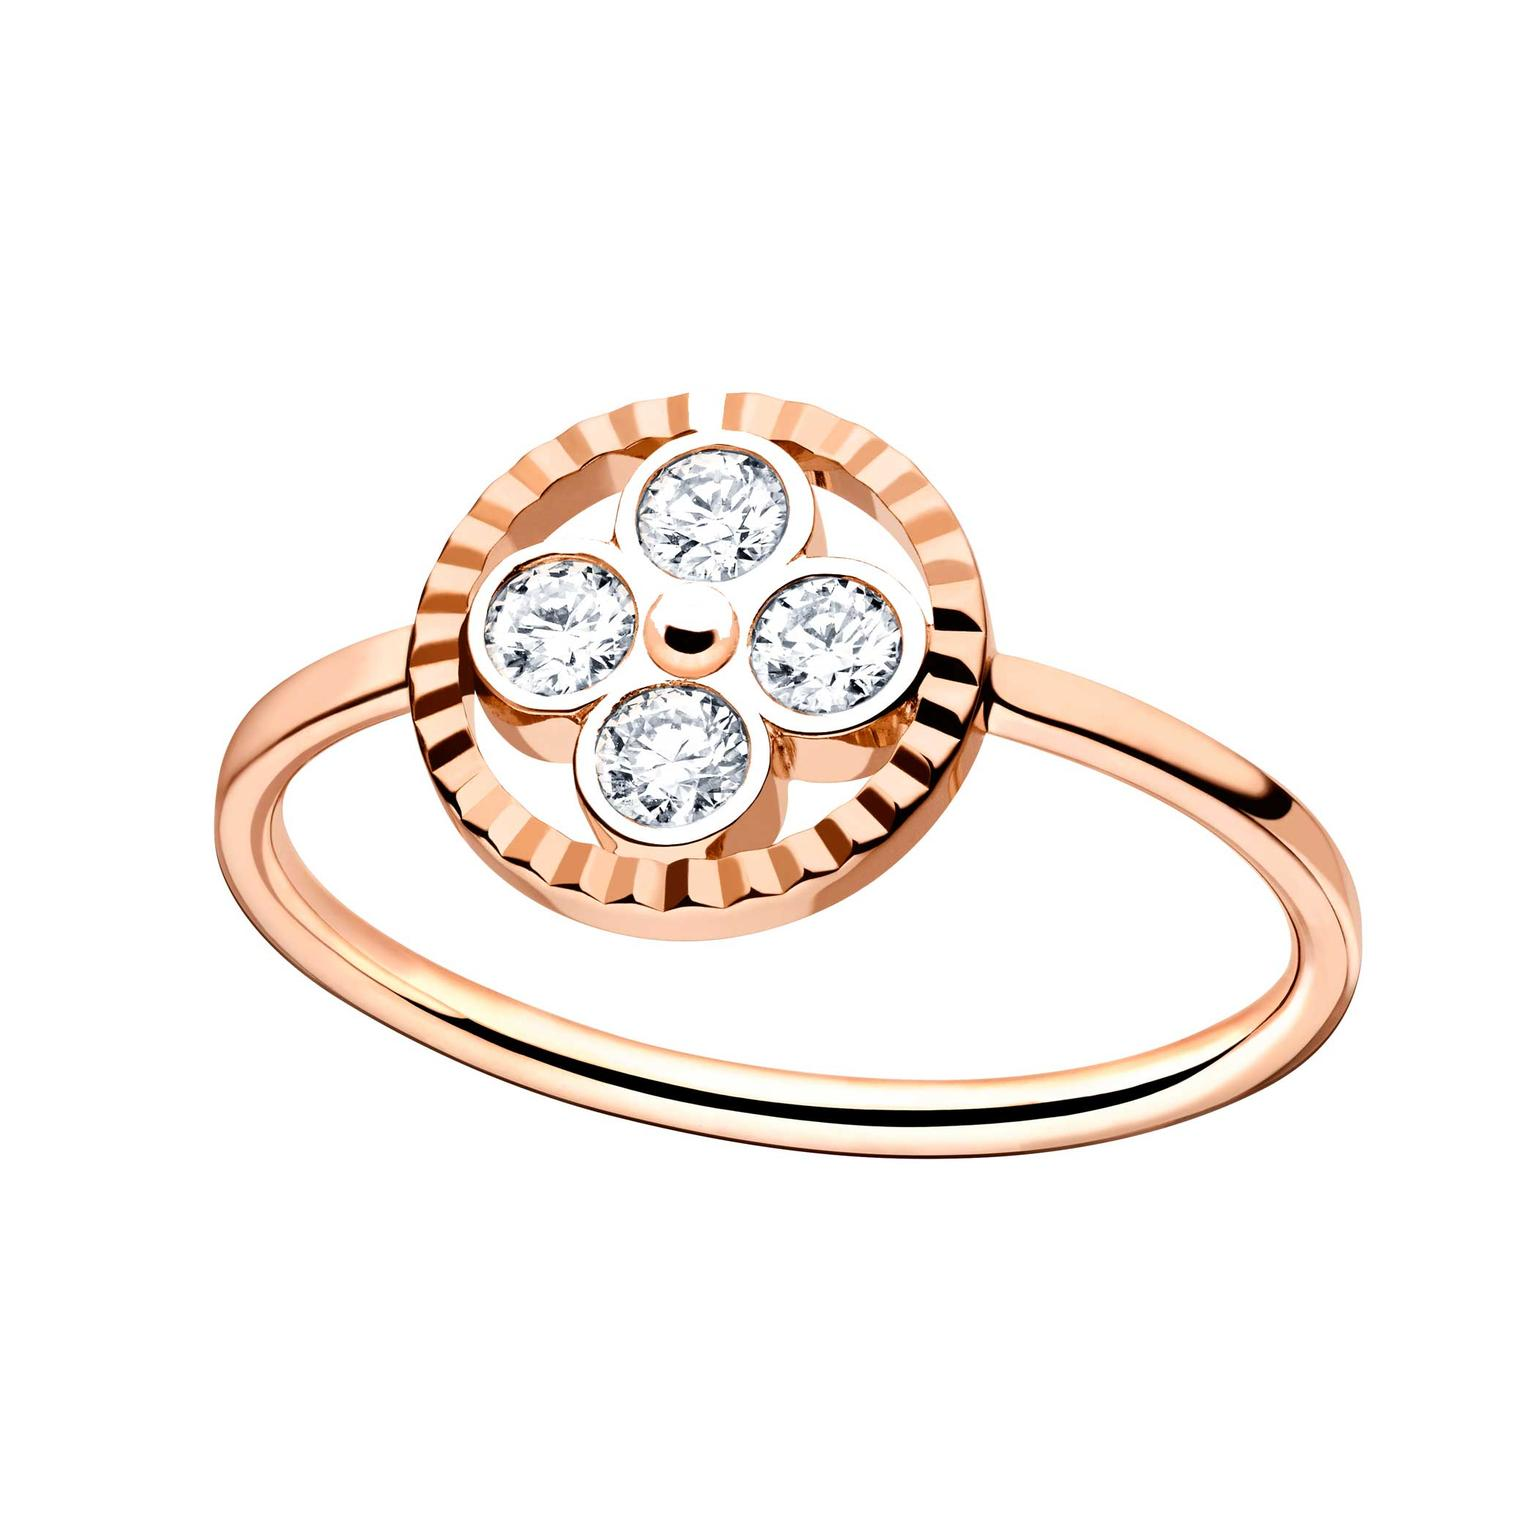 Monogram Sun diamond ring in rose gold Louis Vuitton The